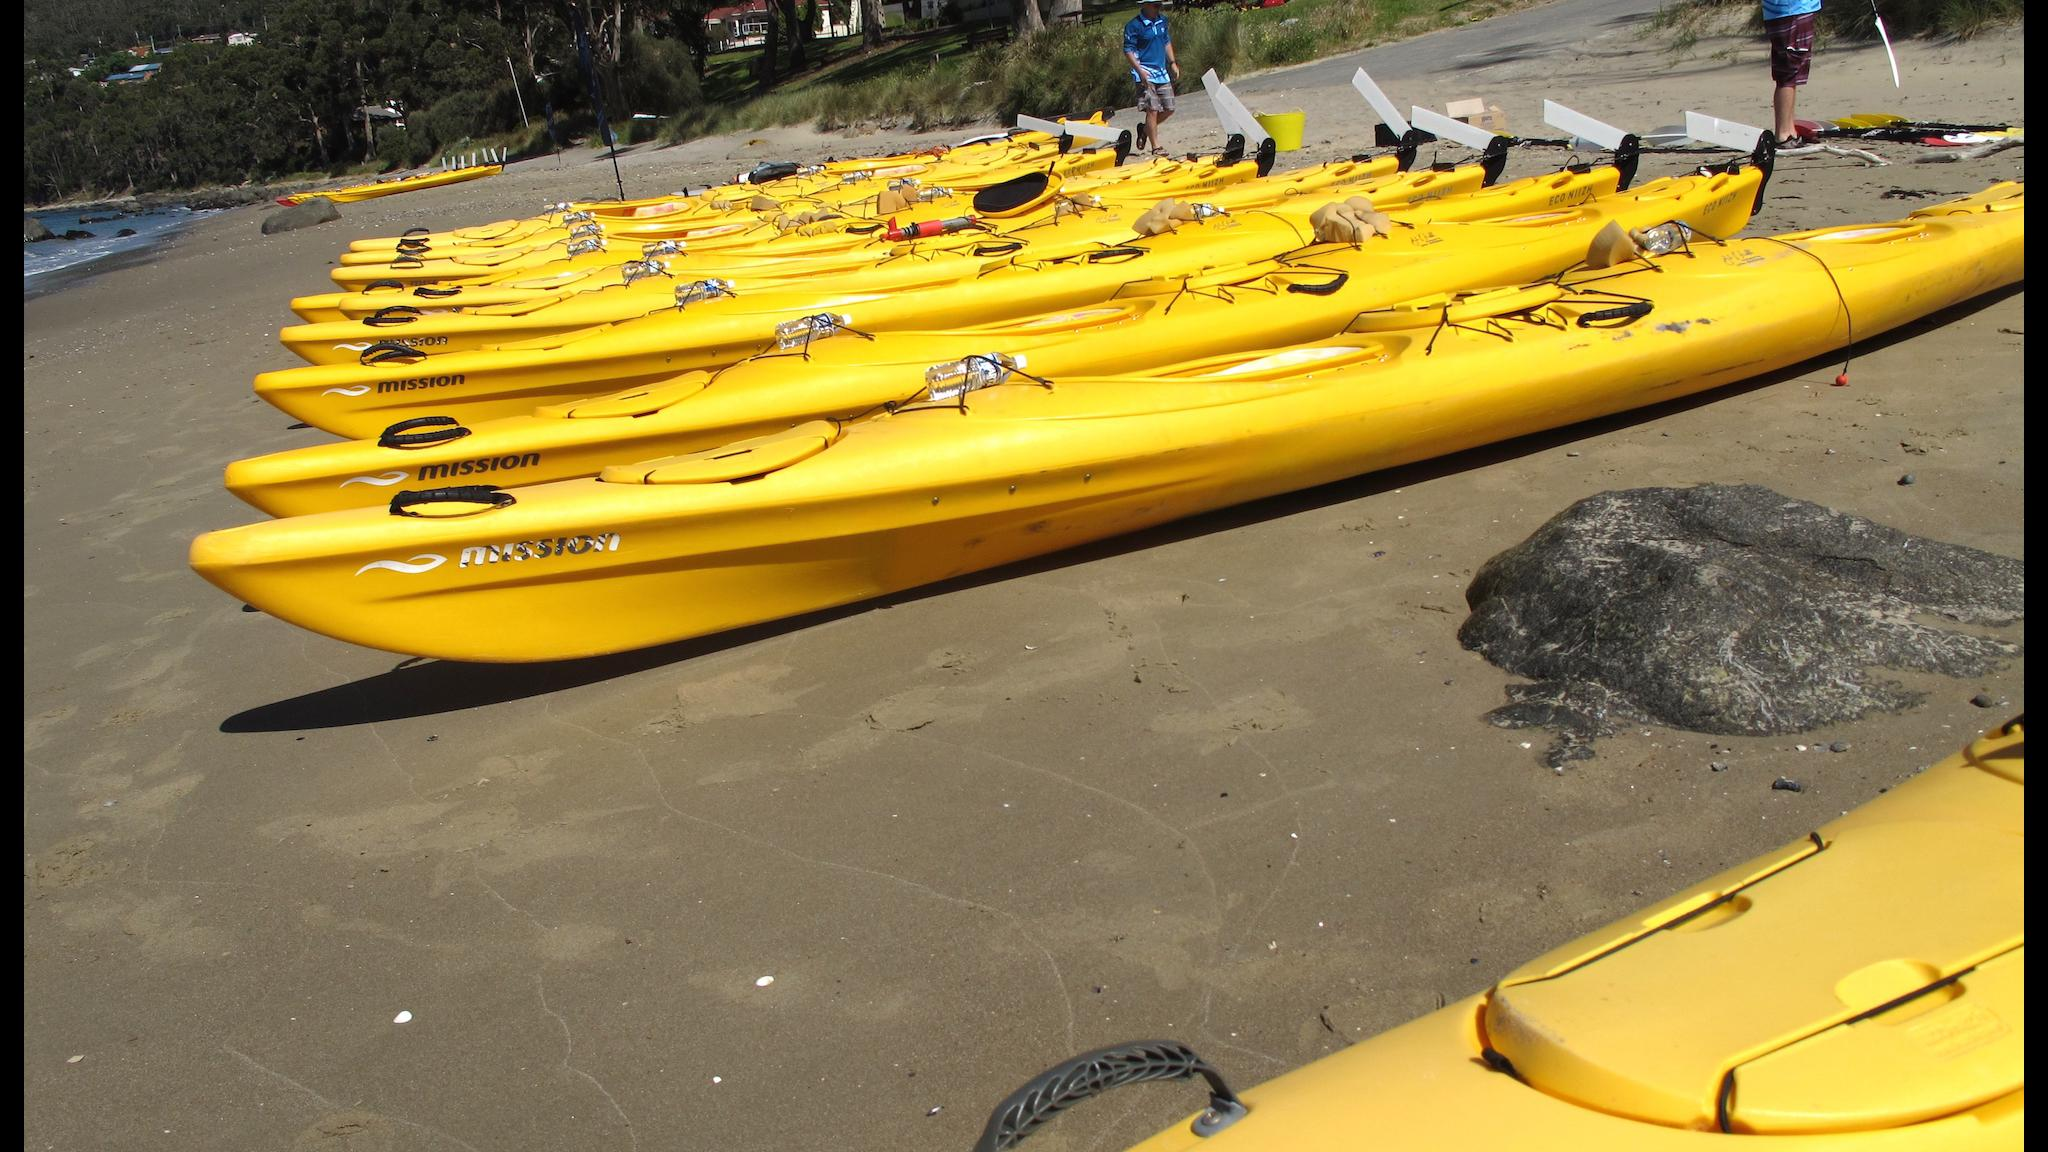 Roaring 40ºs Kayaking - Large number of kayaks on beach for group kayaking, Hobart Tasmania